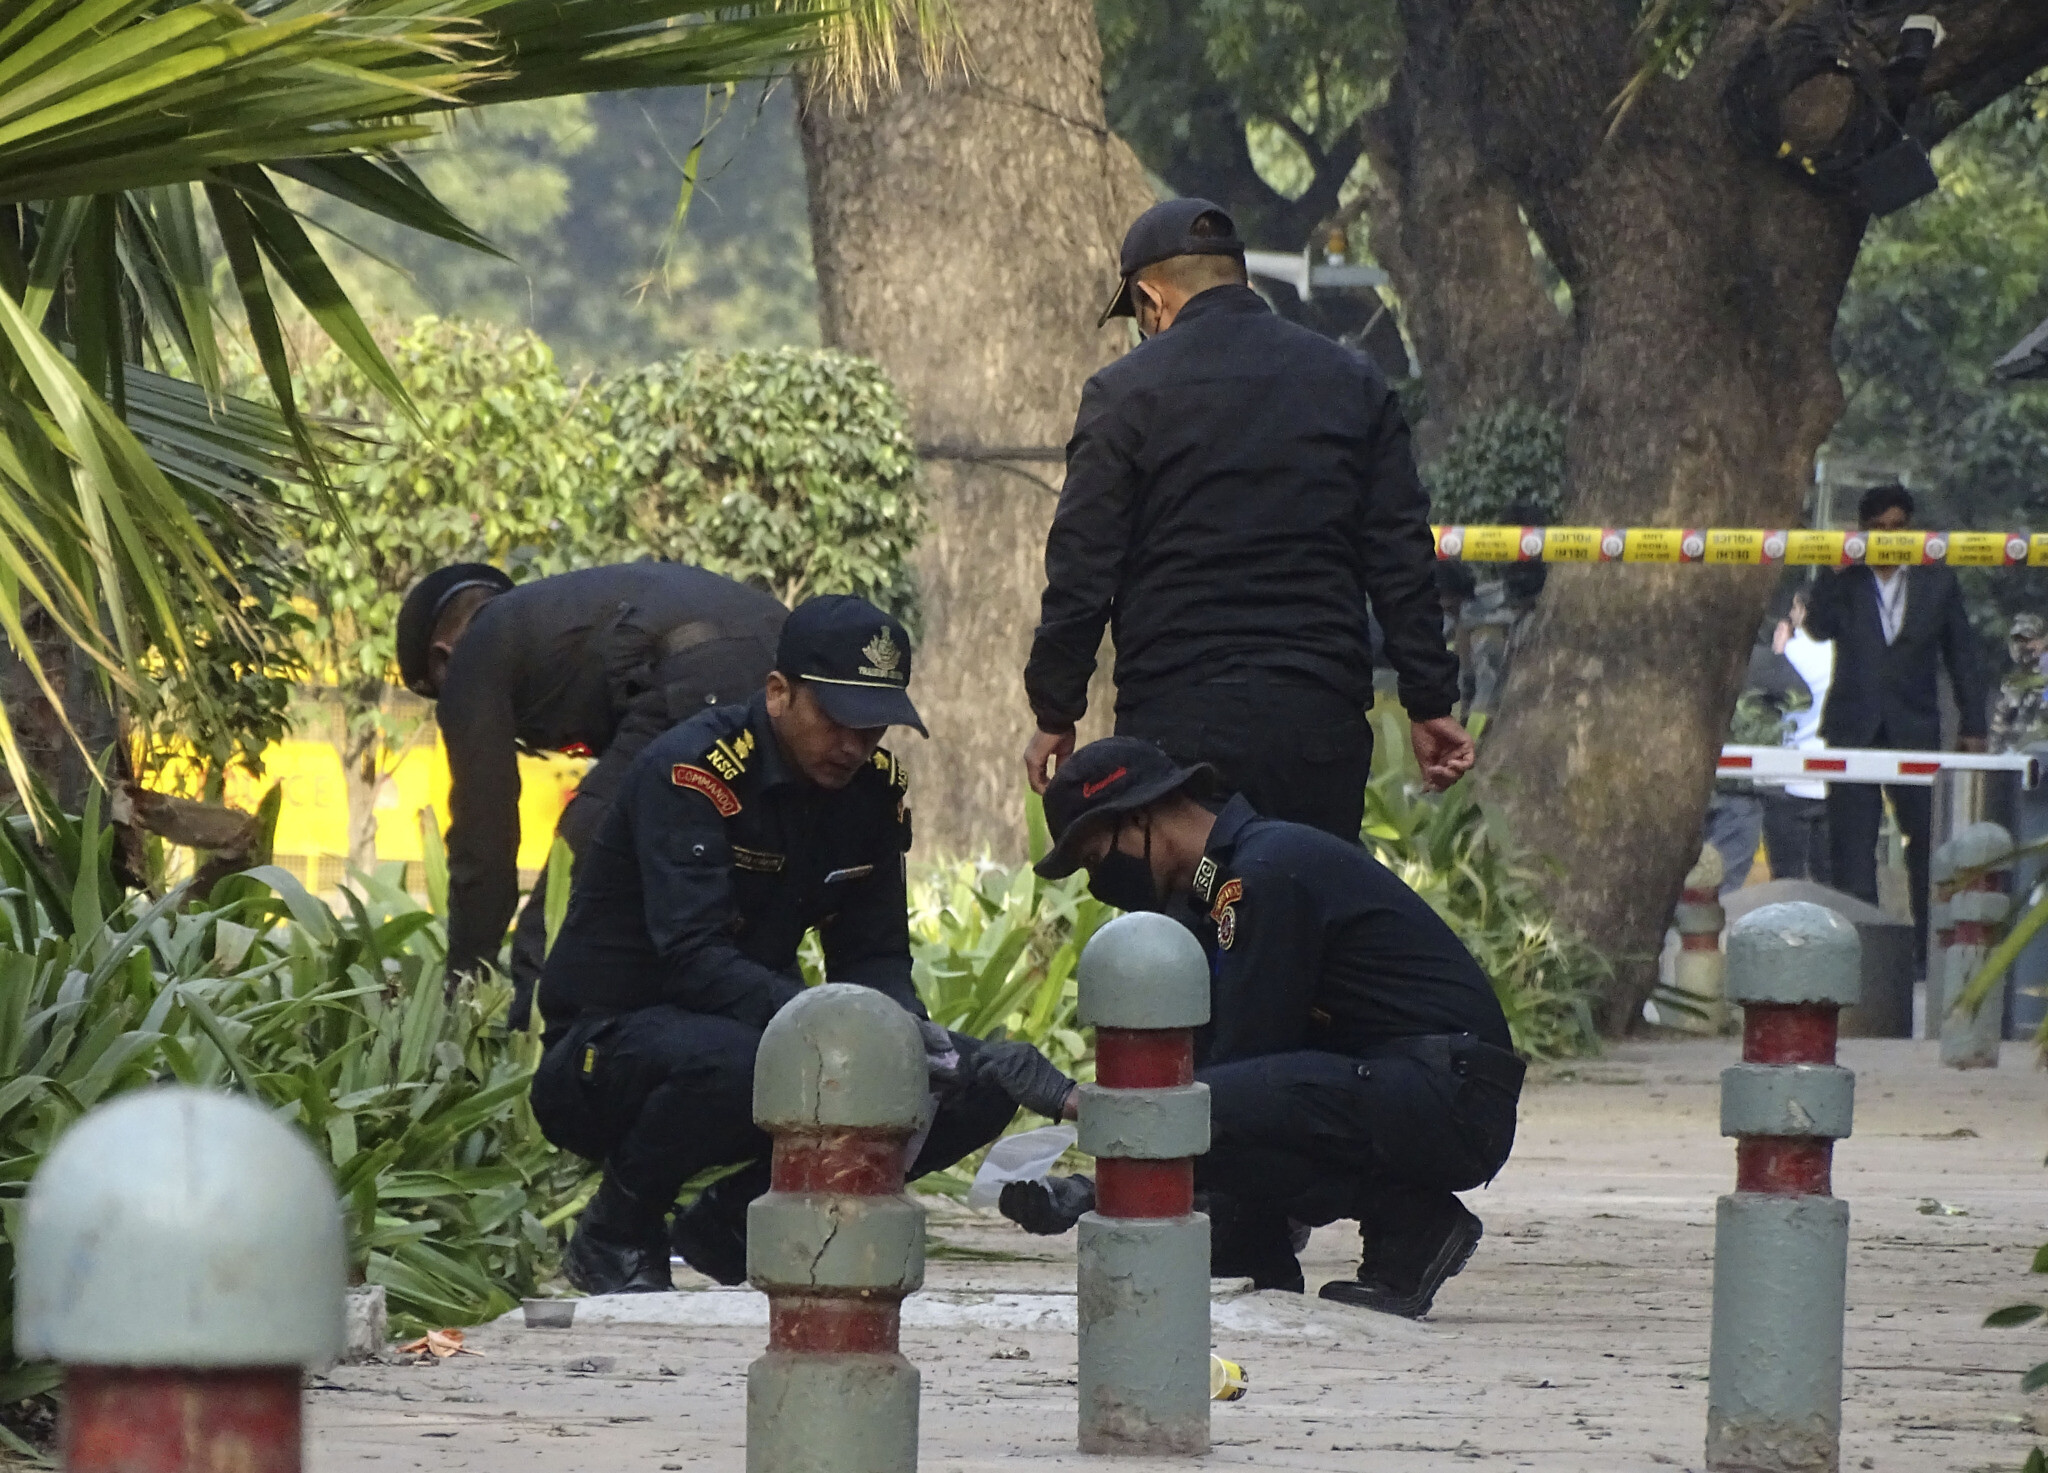 Small explosion caused by 'device' near Israeli Embassy in New Delhi